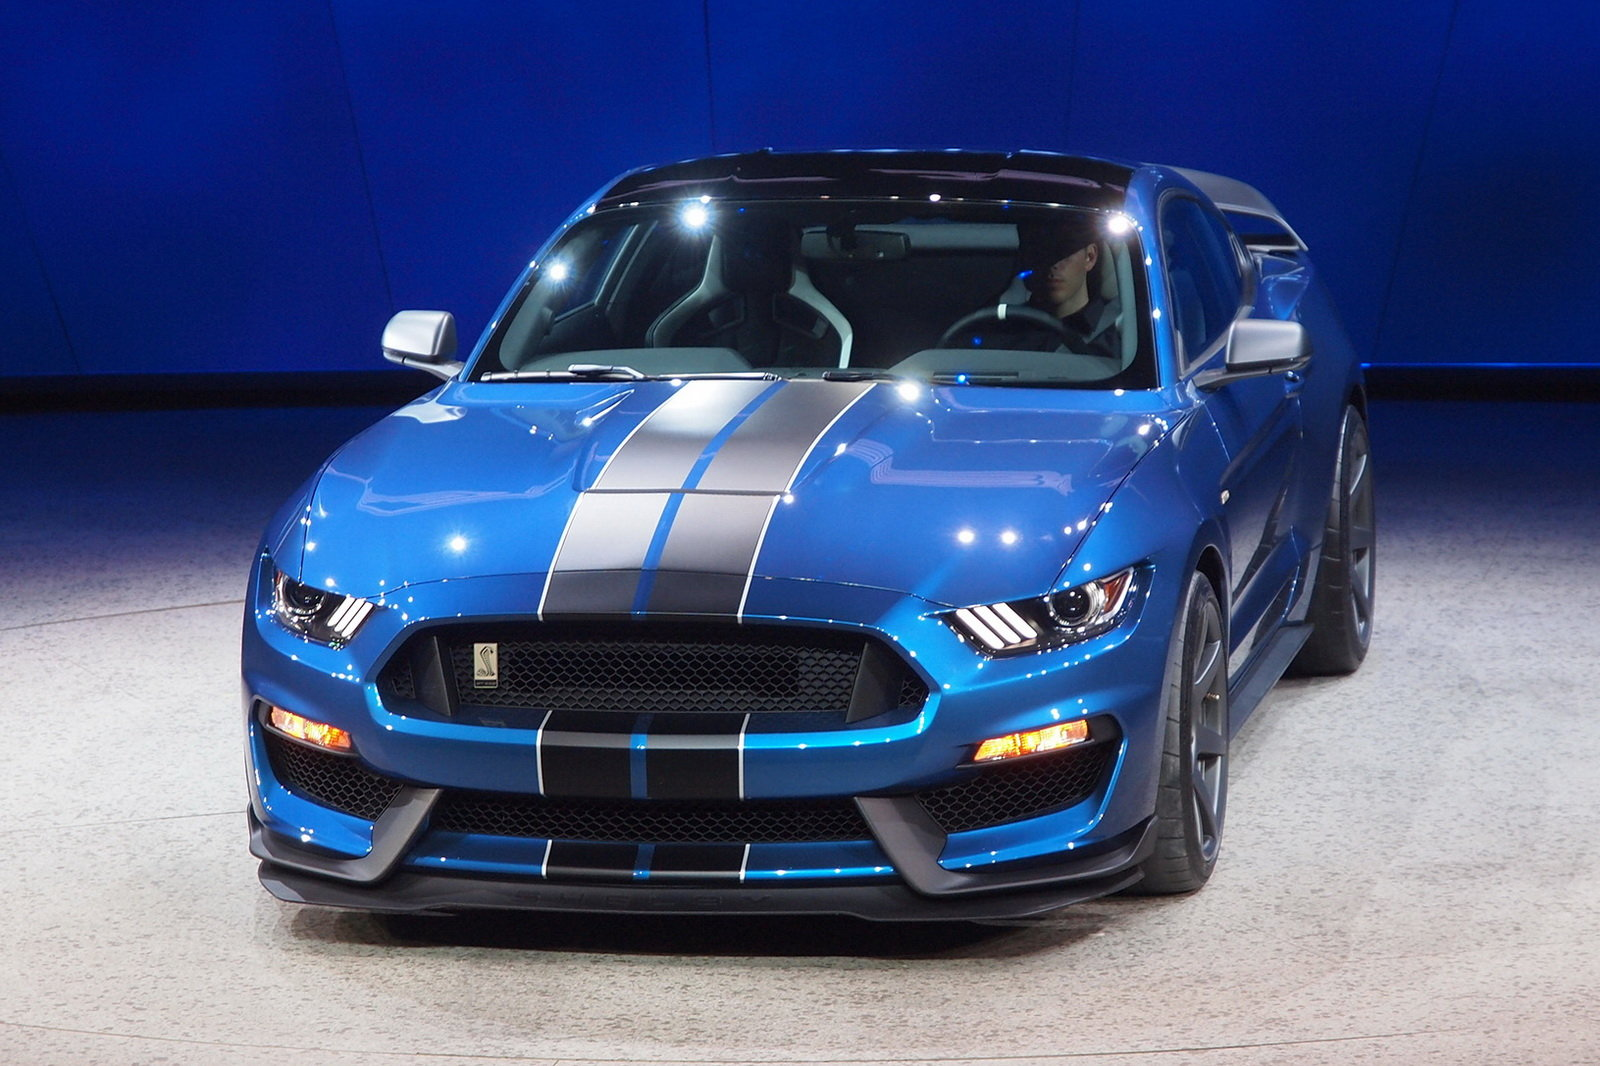 2016 Ford Mustang Shelby Gt350r Front Details (Photo 28 of 47)